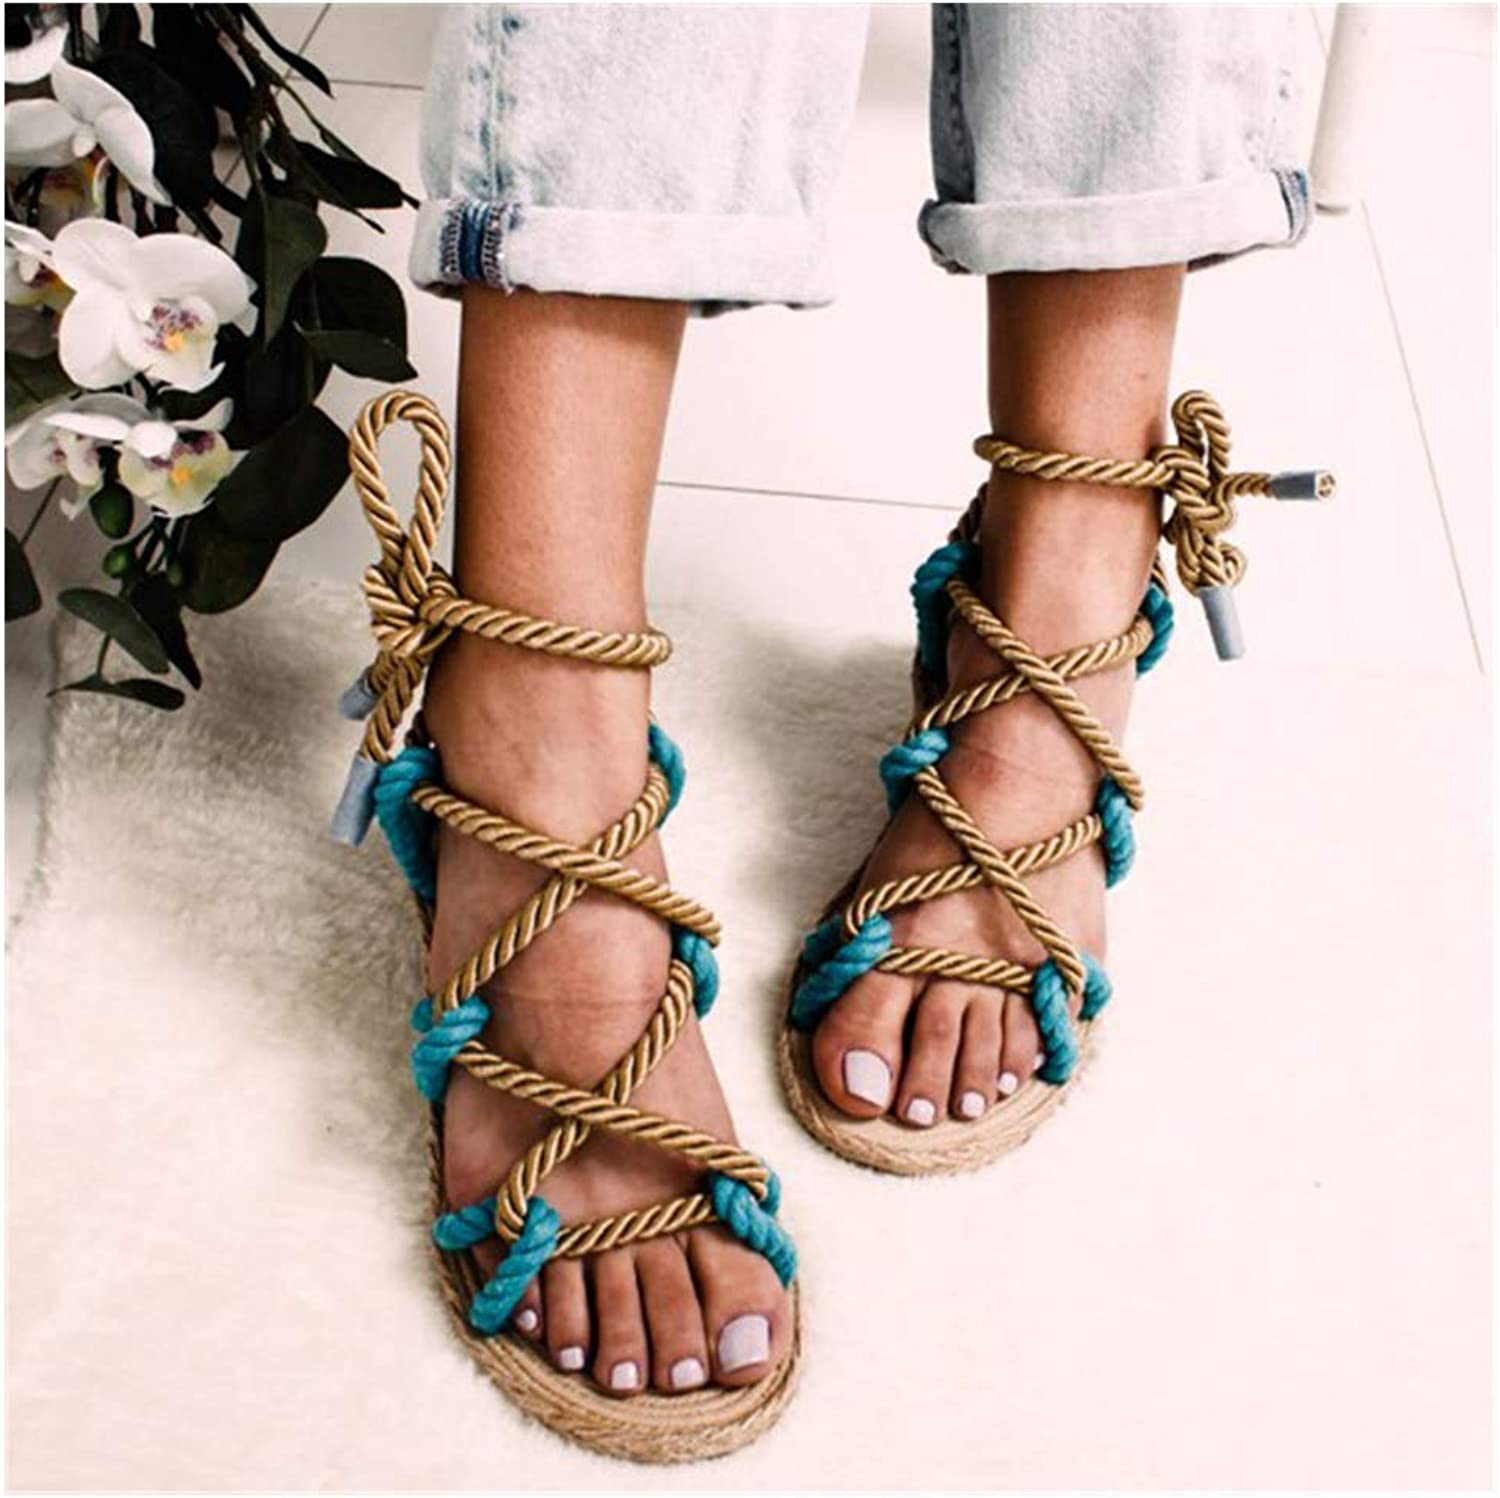 Women Sandals Rome Hemp Rope Women Sandals, Casuals Gladiator Cross Tied Women shoes,bluee,8US